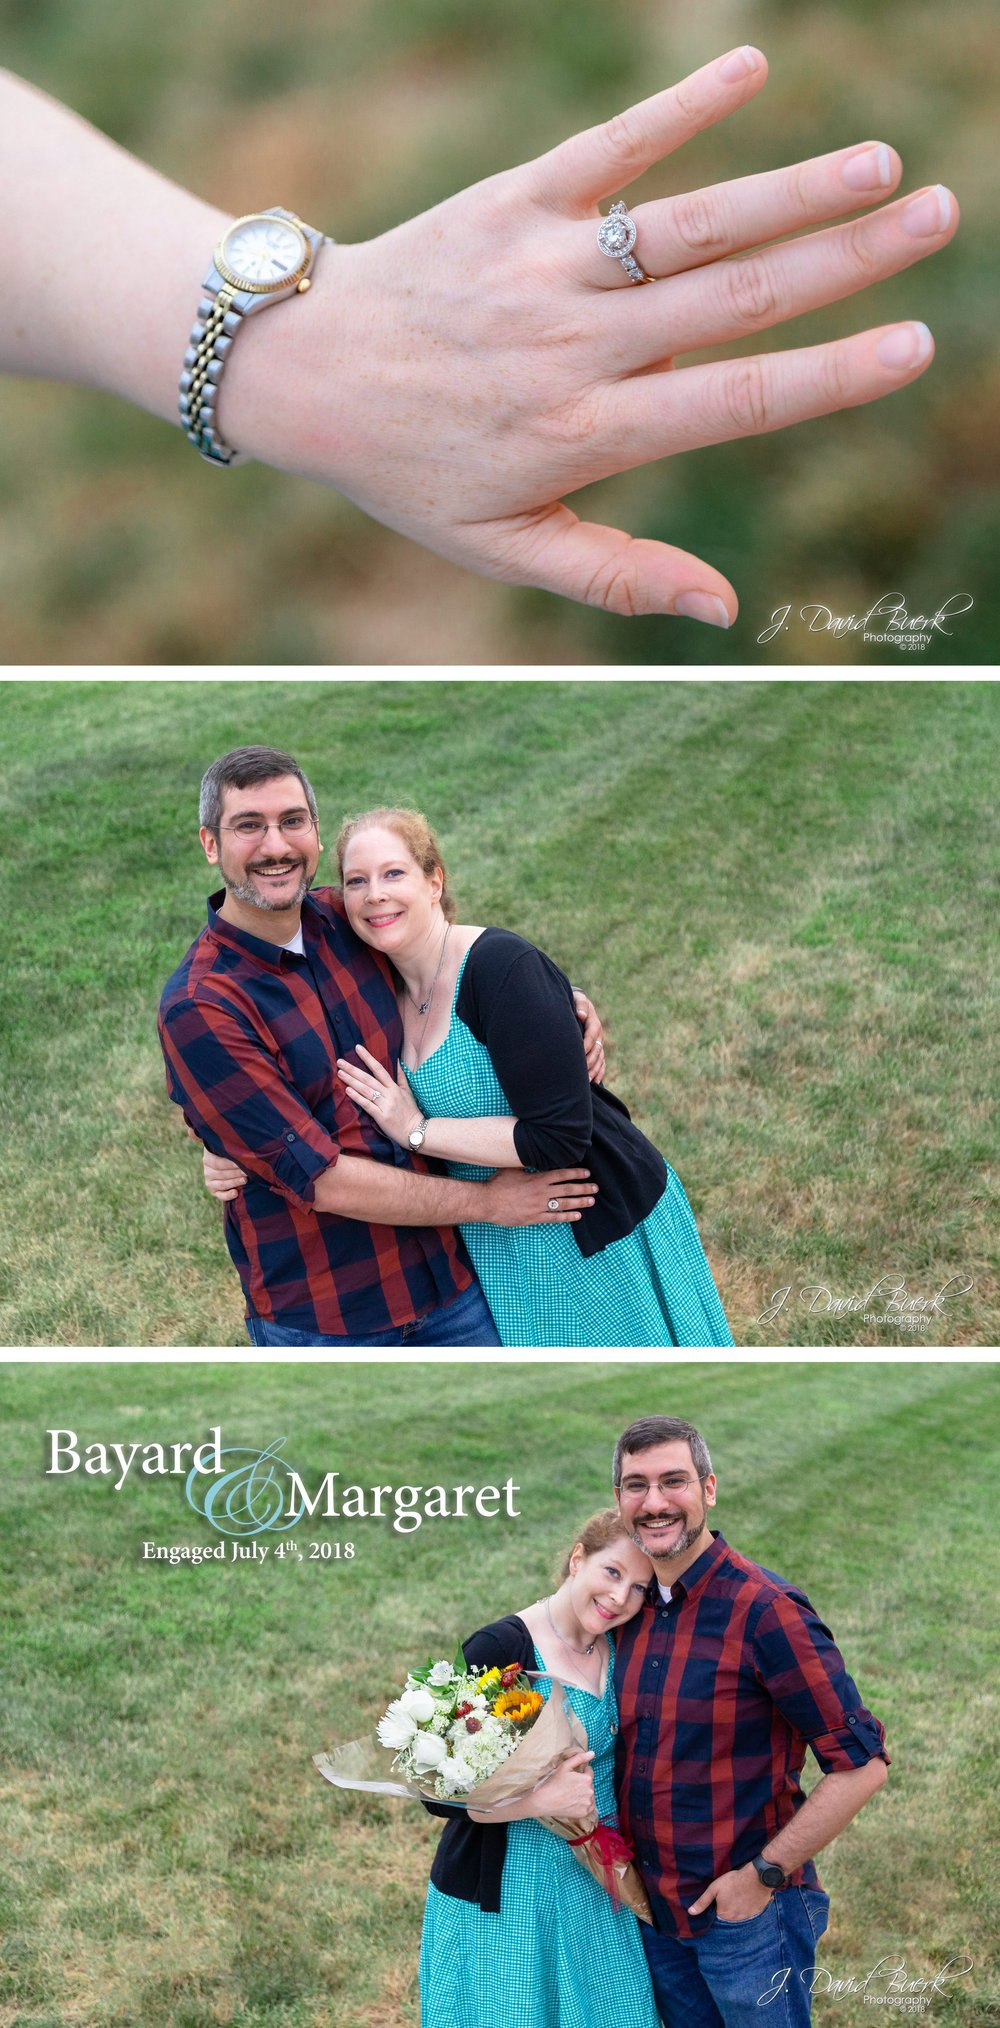 20170704 Bayard Margaret Proposal 5.jpg